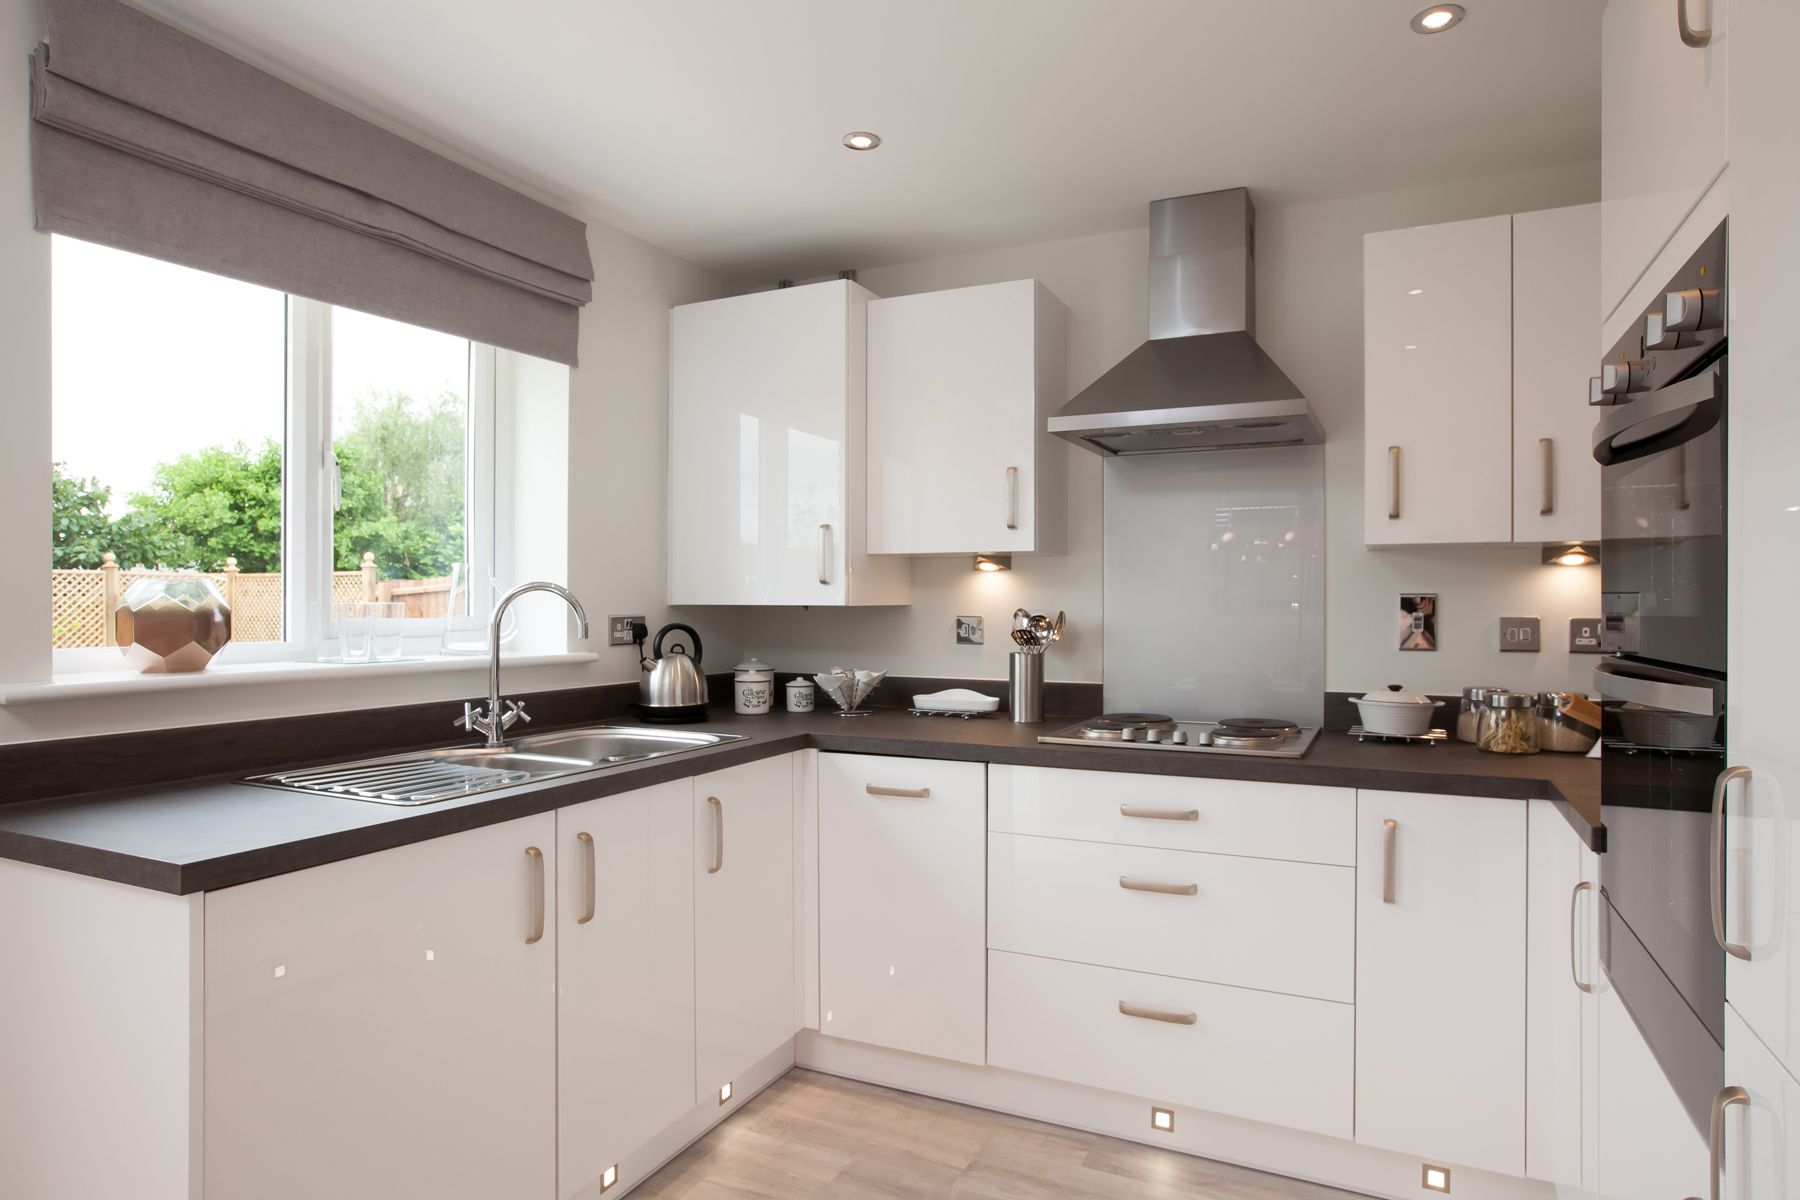 TW Exeter - Sherford - Juniper example kitchen